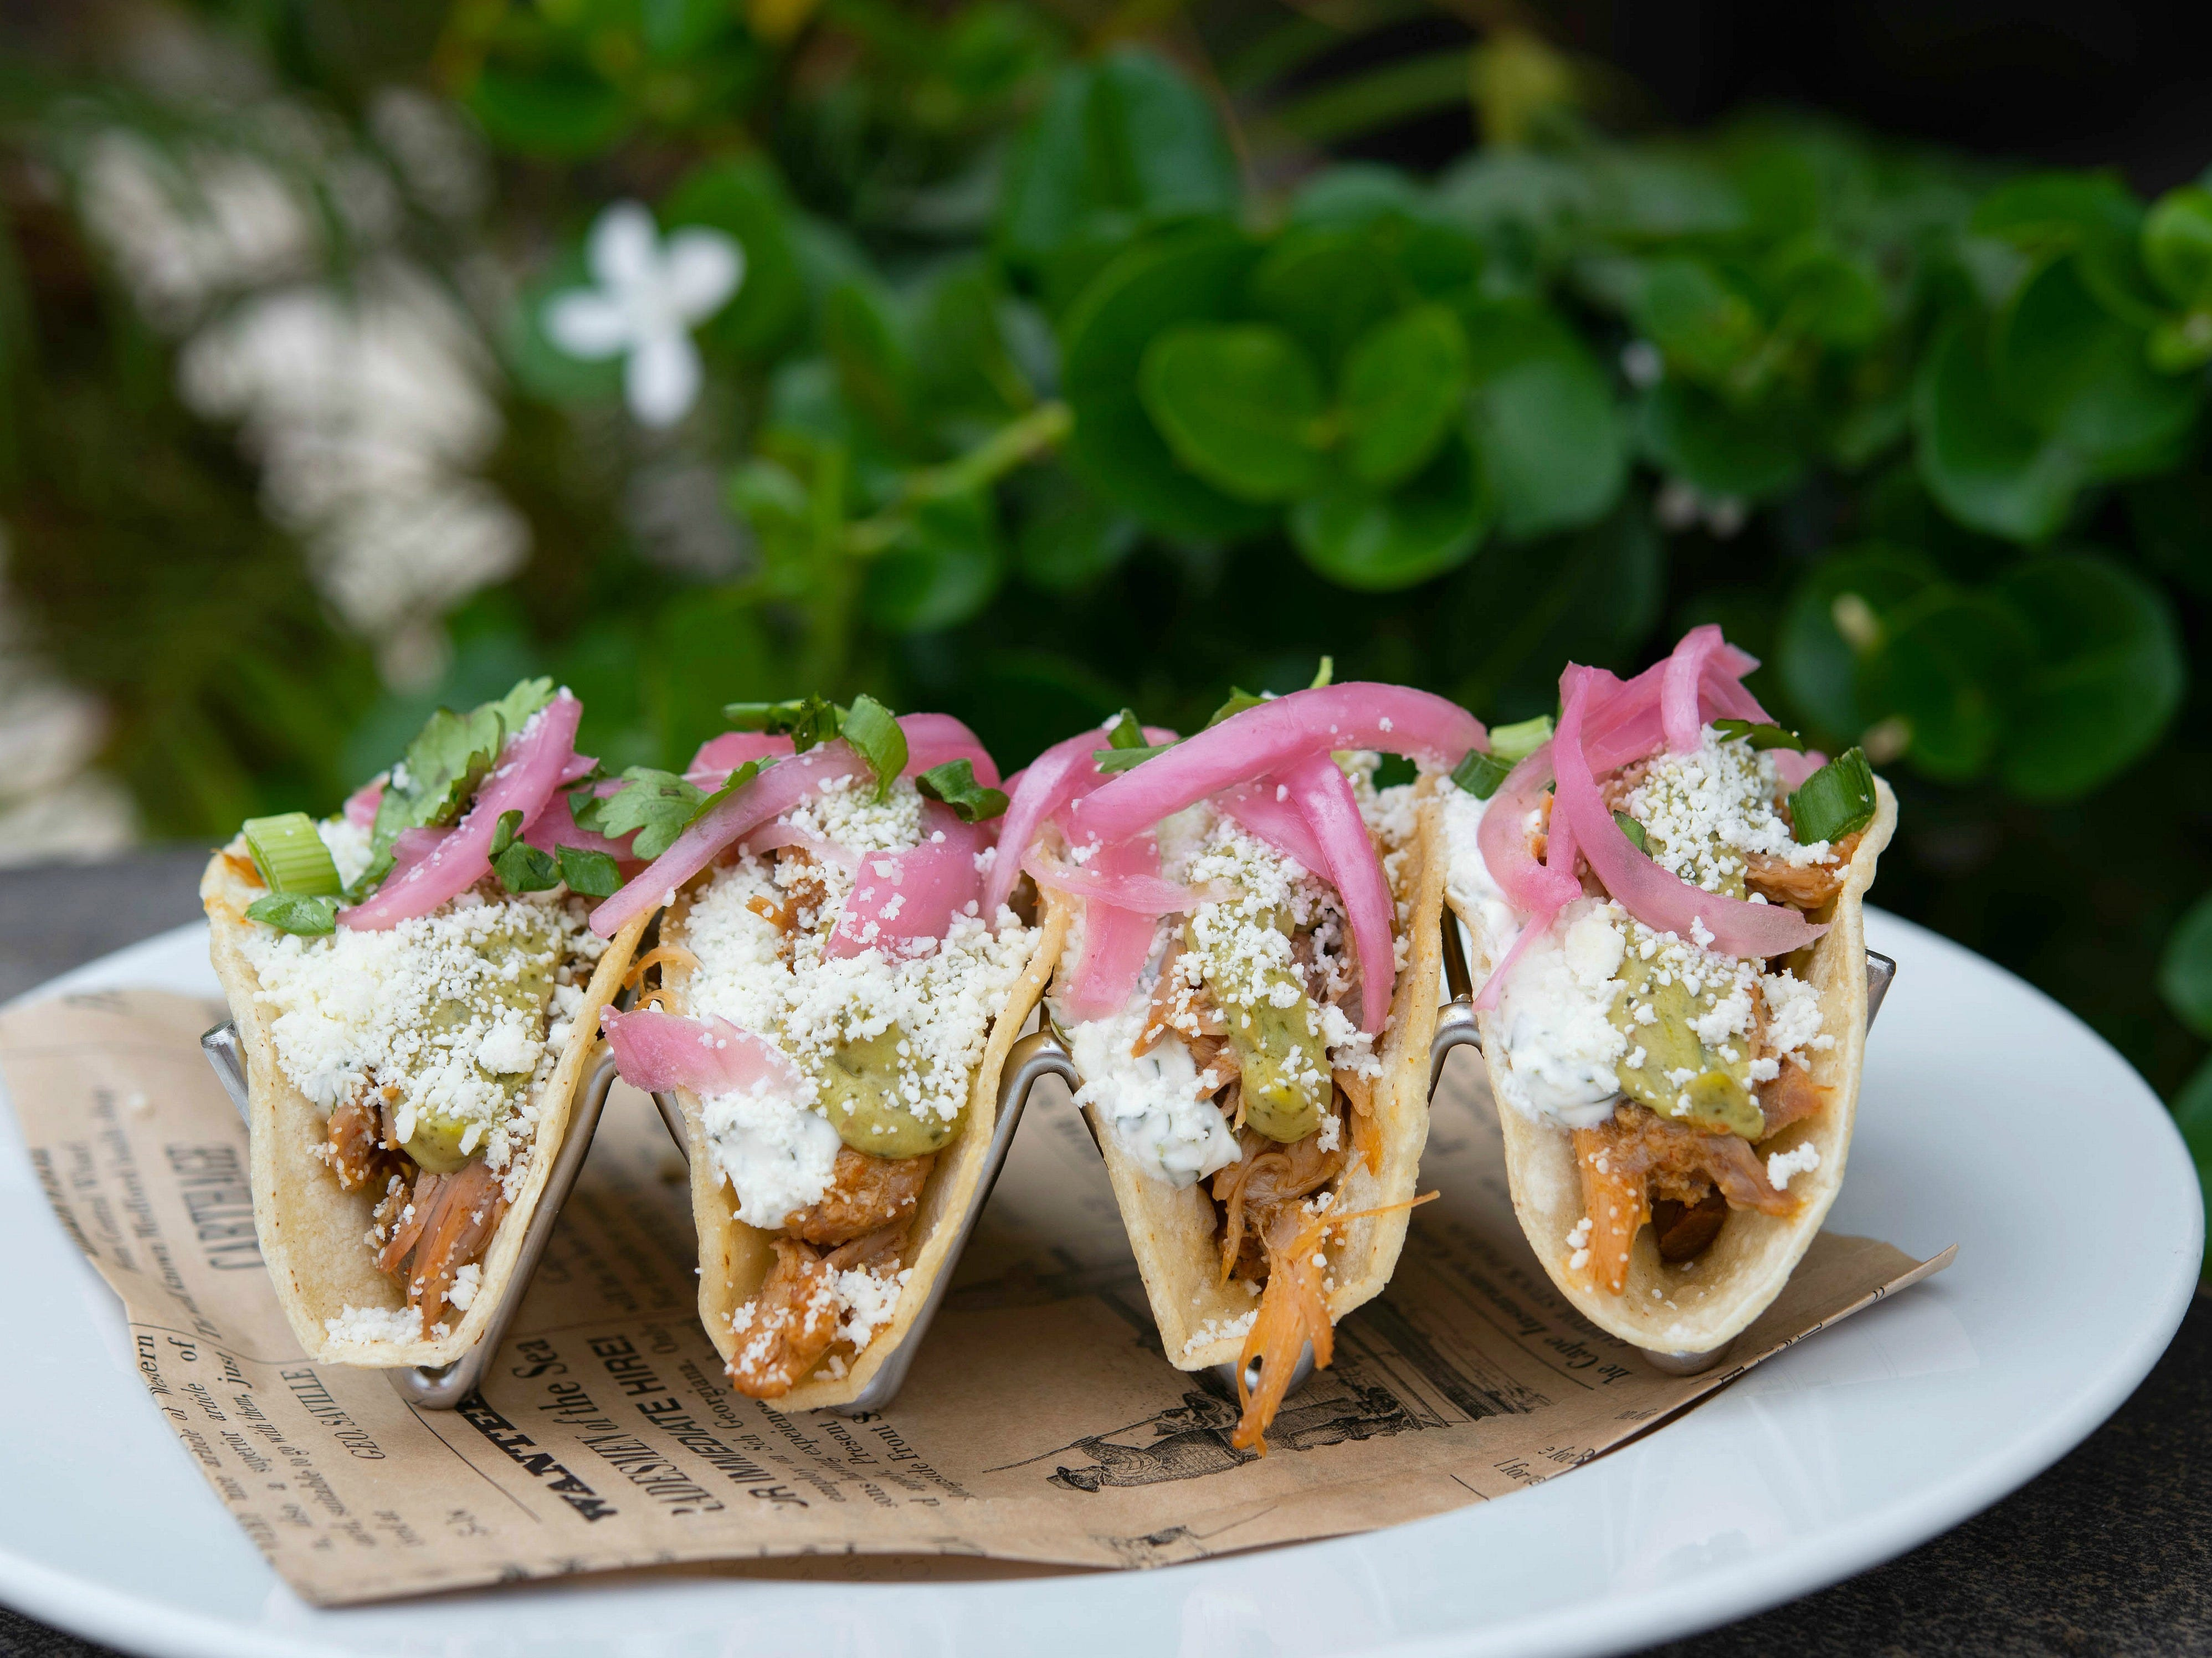 The happy hour tacos at Rico's American Grill at the Pointe Hilton Squaw Peak Resort.